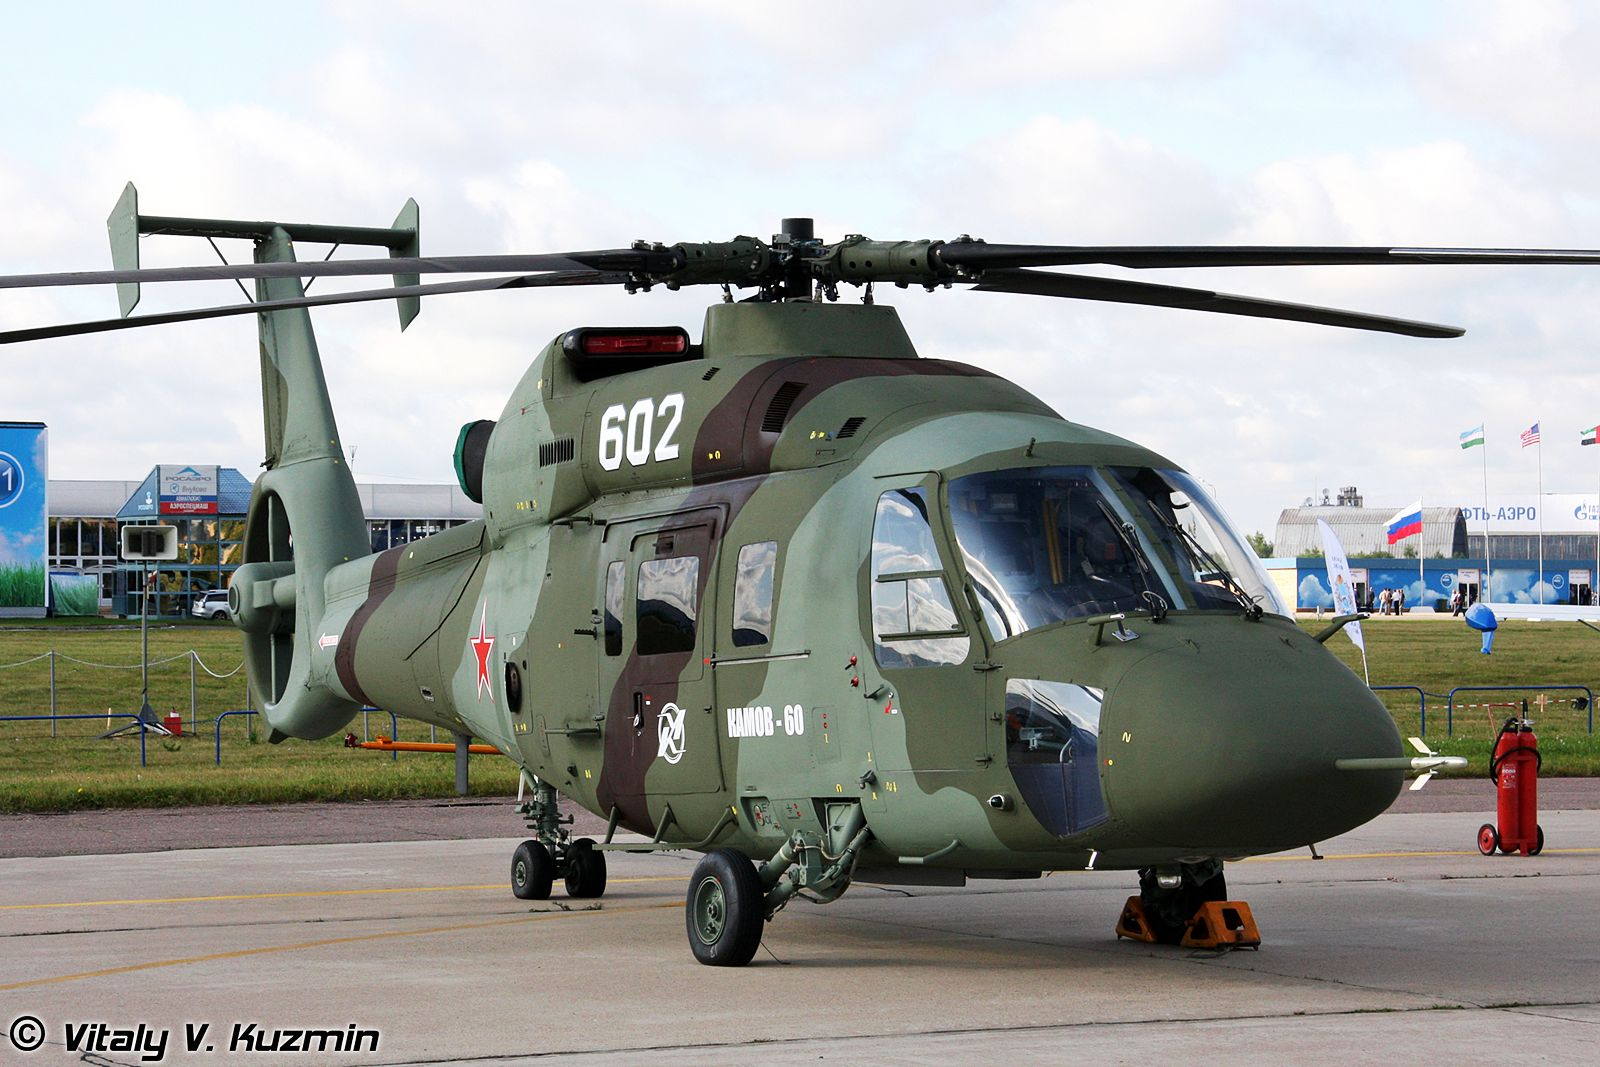 helicopter rusia with Ministerio De Defensa Ruso Ha Ordenado on Ministerio De Defensa Ruso Ha Ordenado in addition 20161006 Syrie Armee Russe Mediterranee Ayrault Moscou Washington as well Summer Kazan From Birds Eye View also 1037763327 likewise Russia Nuclear Security Summit.